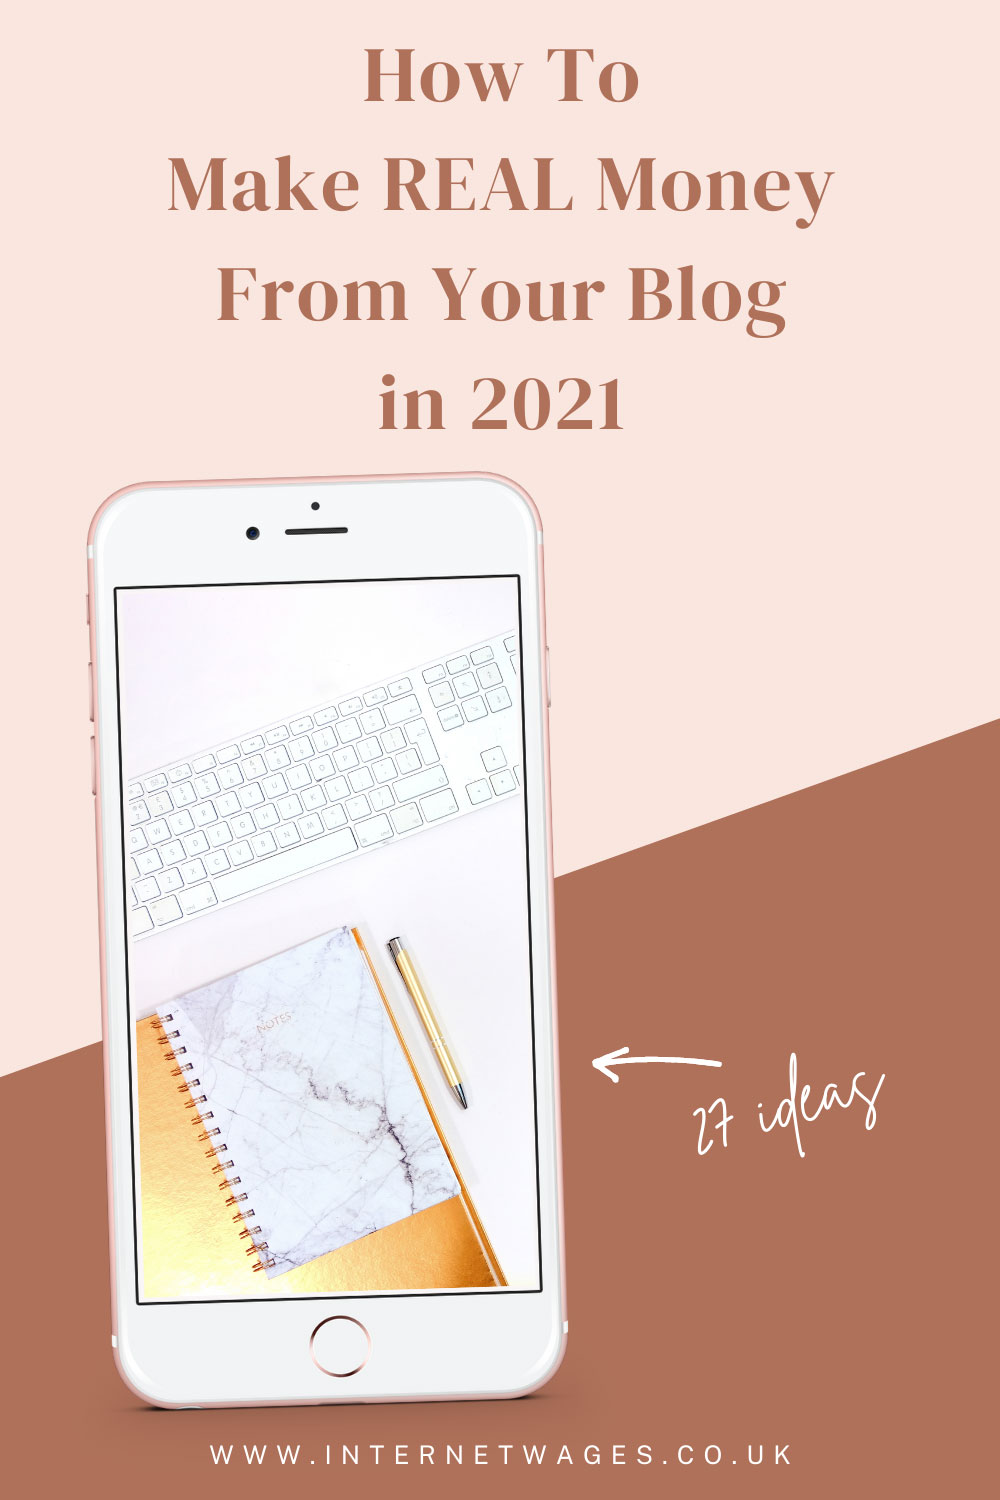 How To Make Real Money From Your Blog in 2021.